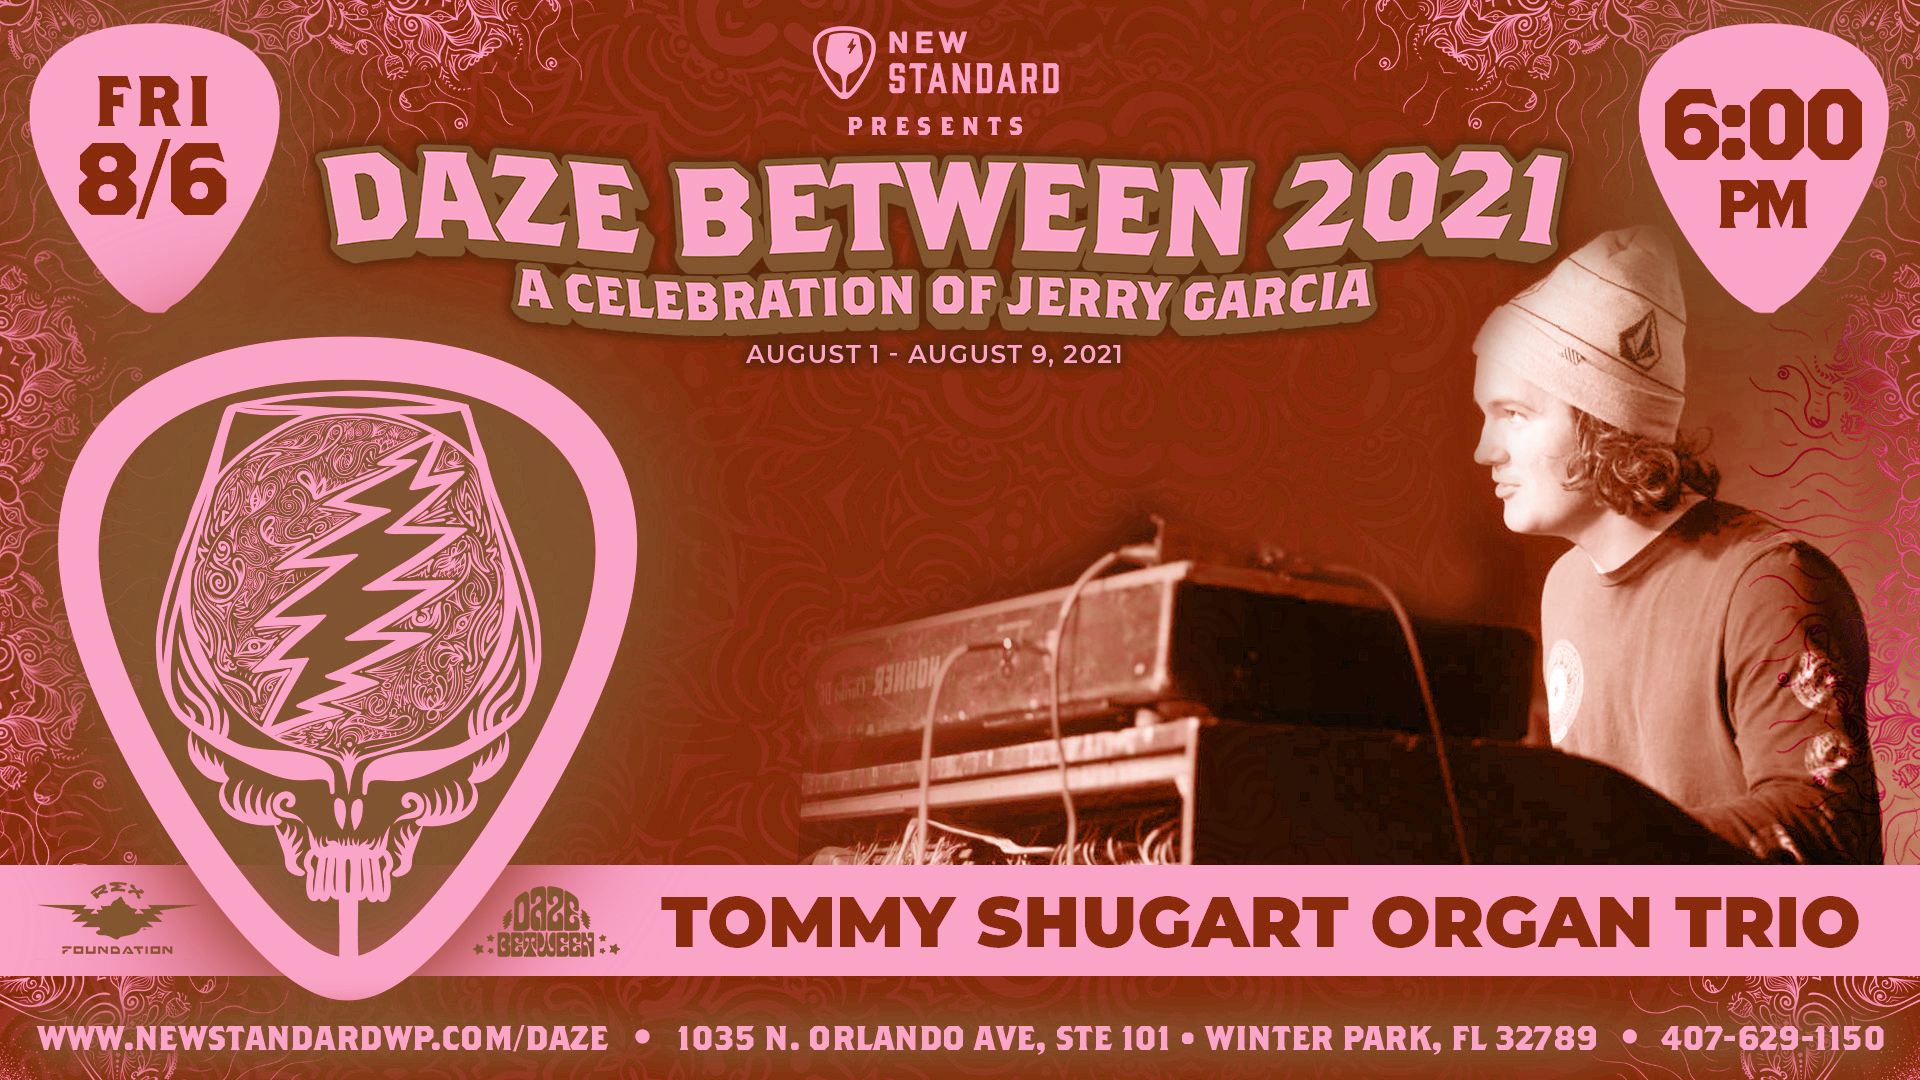 Photo for Tommy Shugart Organ Trio - Live at The New Standard - Daze Between 2021 on ViewStub